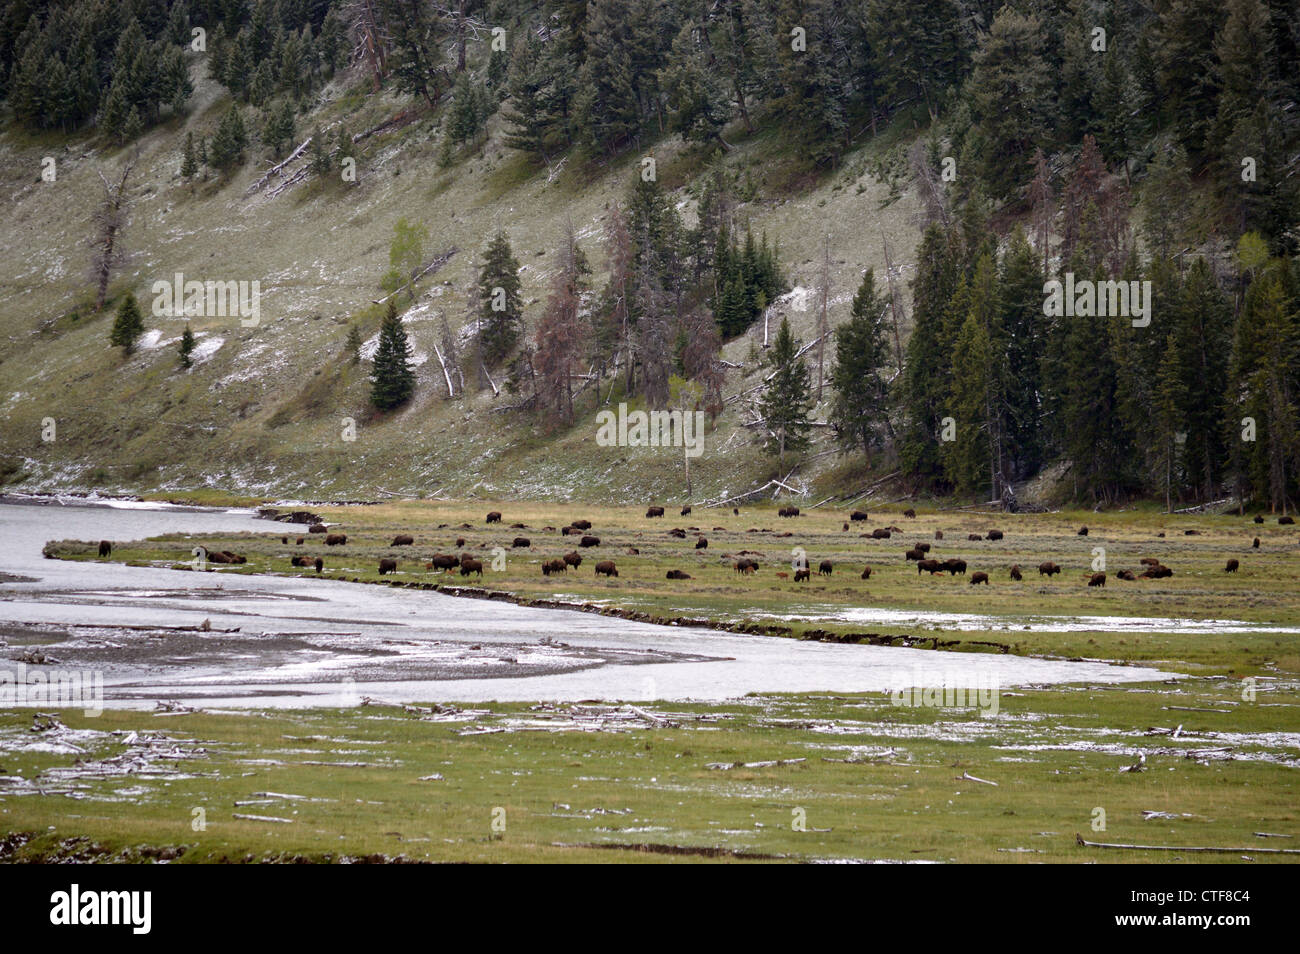 A herd of buffalo in Yellowstone National Park near  sylvan lake - Stock Image